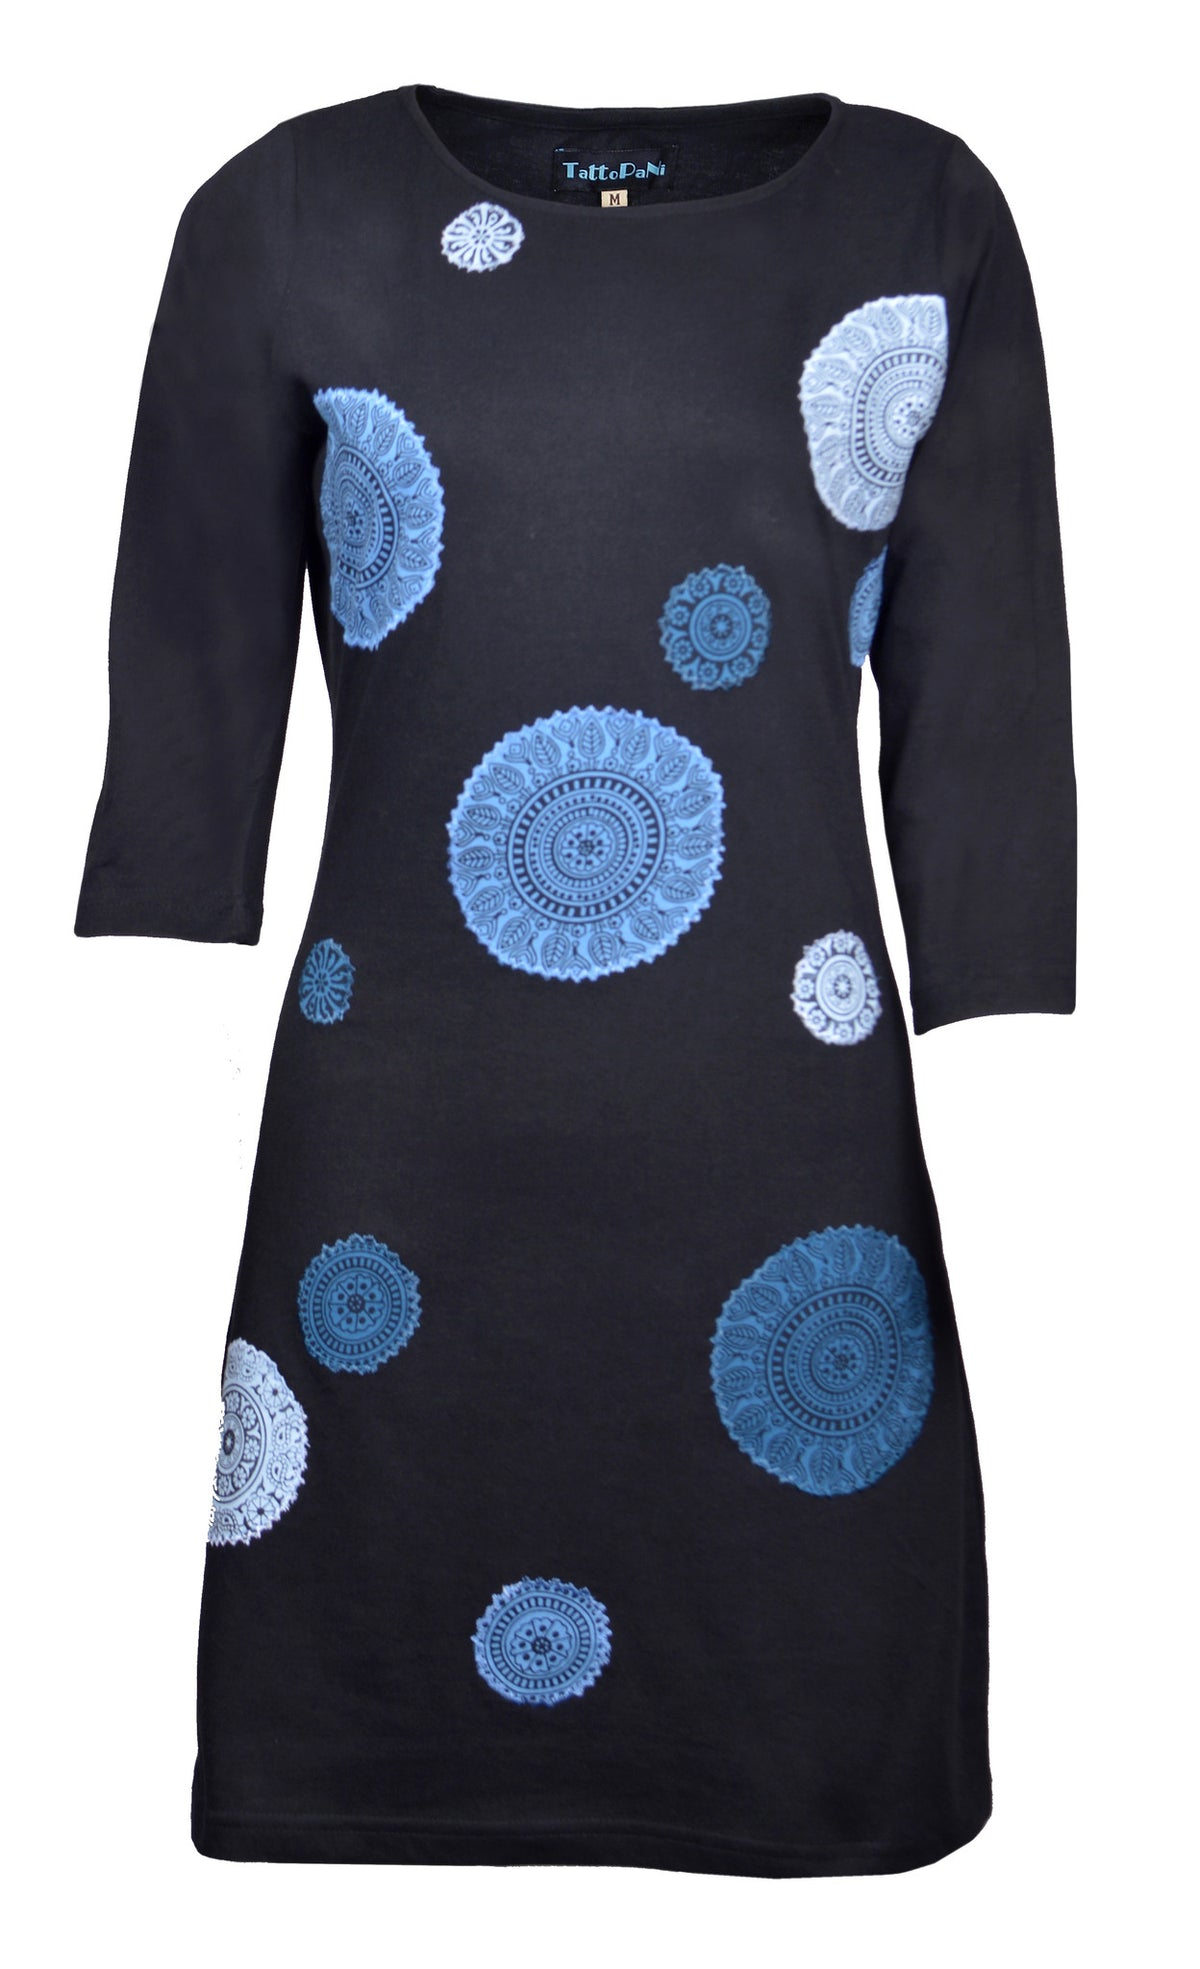 Ladies Quarter Sleeve Dress with Mandala Embroidery -Coconut - Craze Trade Limited